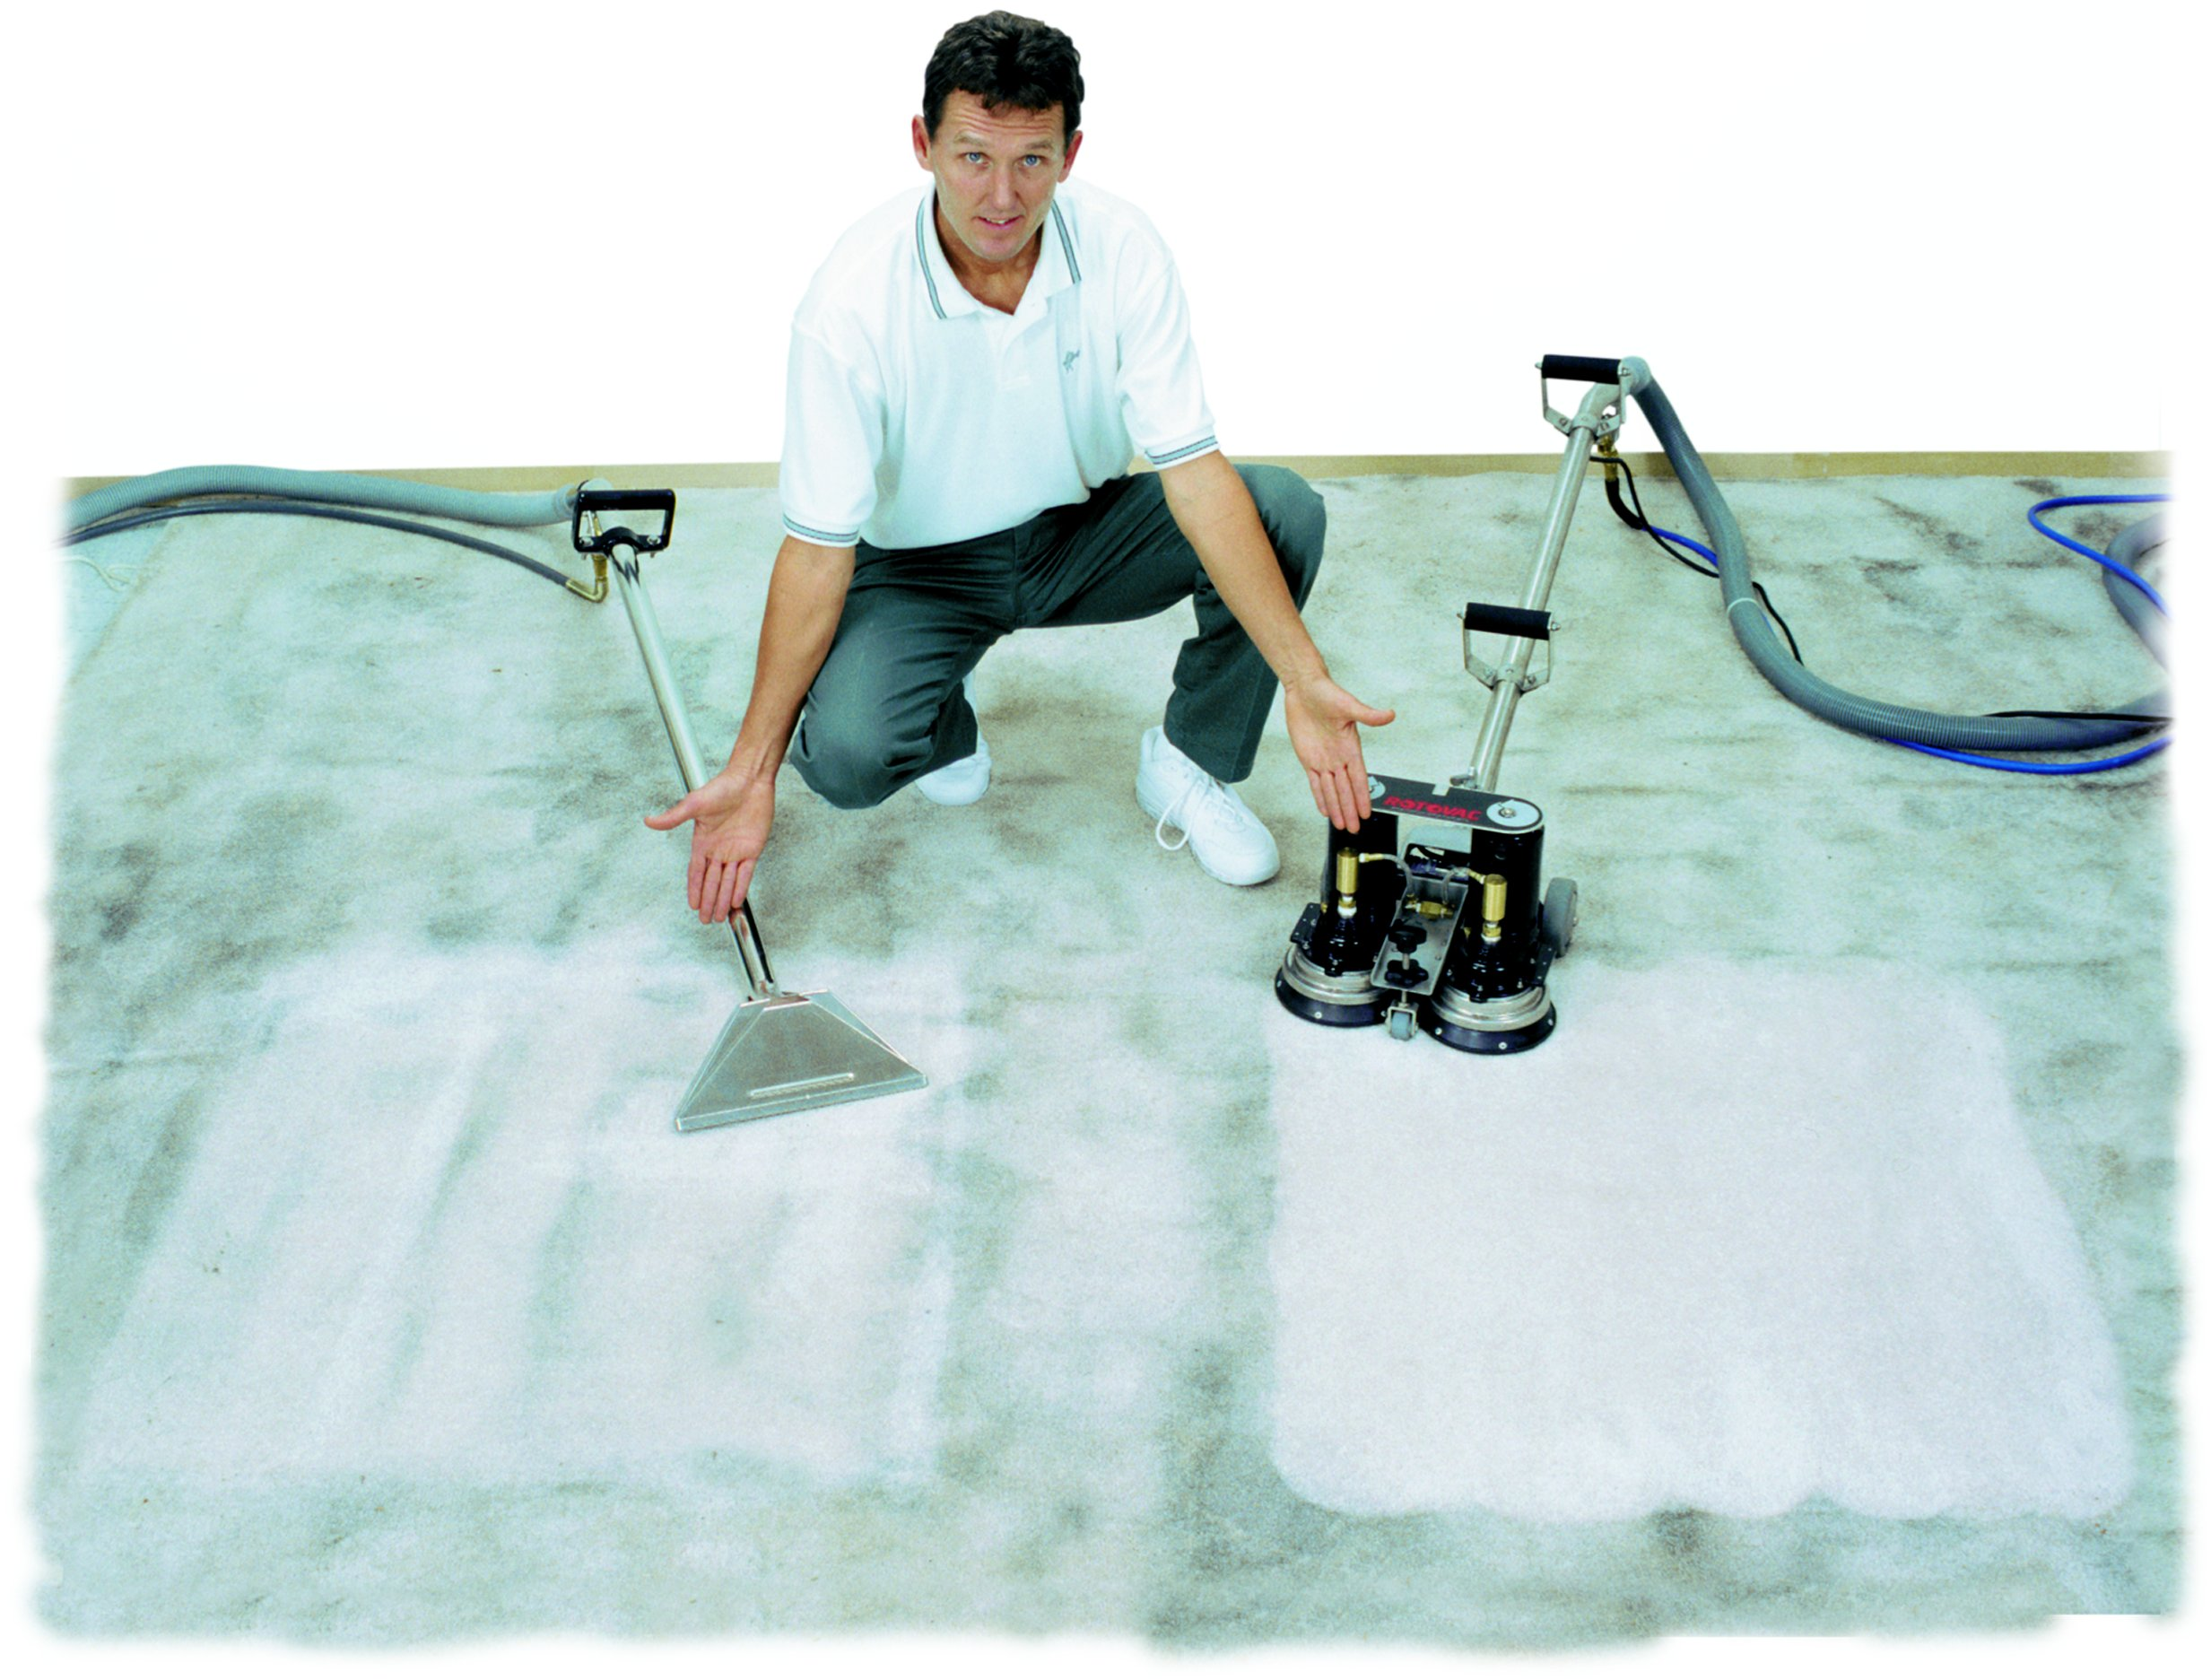 how to dry clean carpet yourself